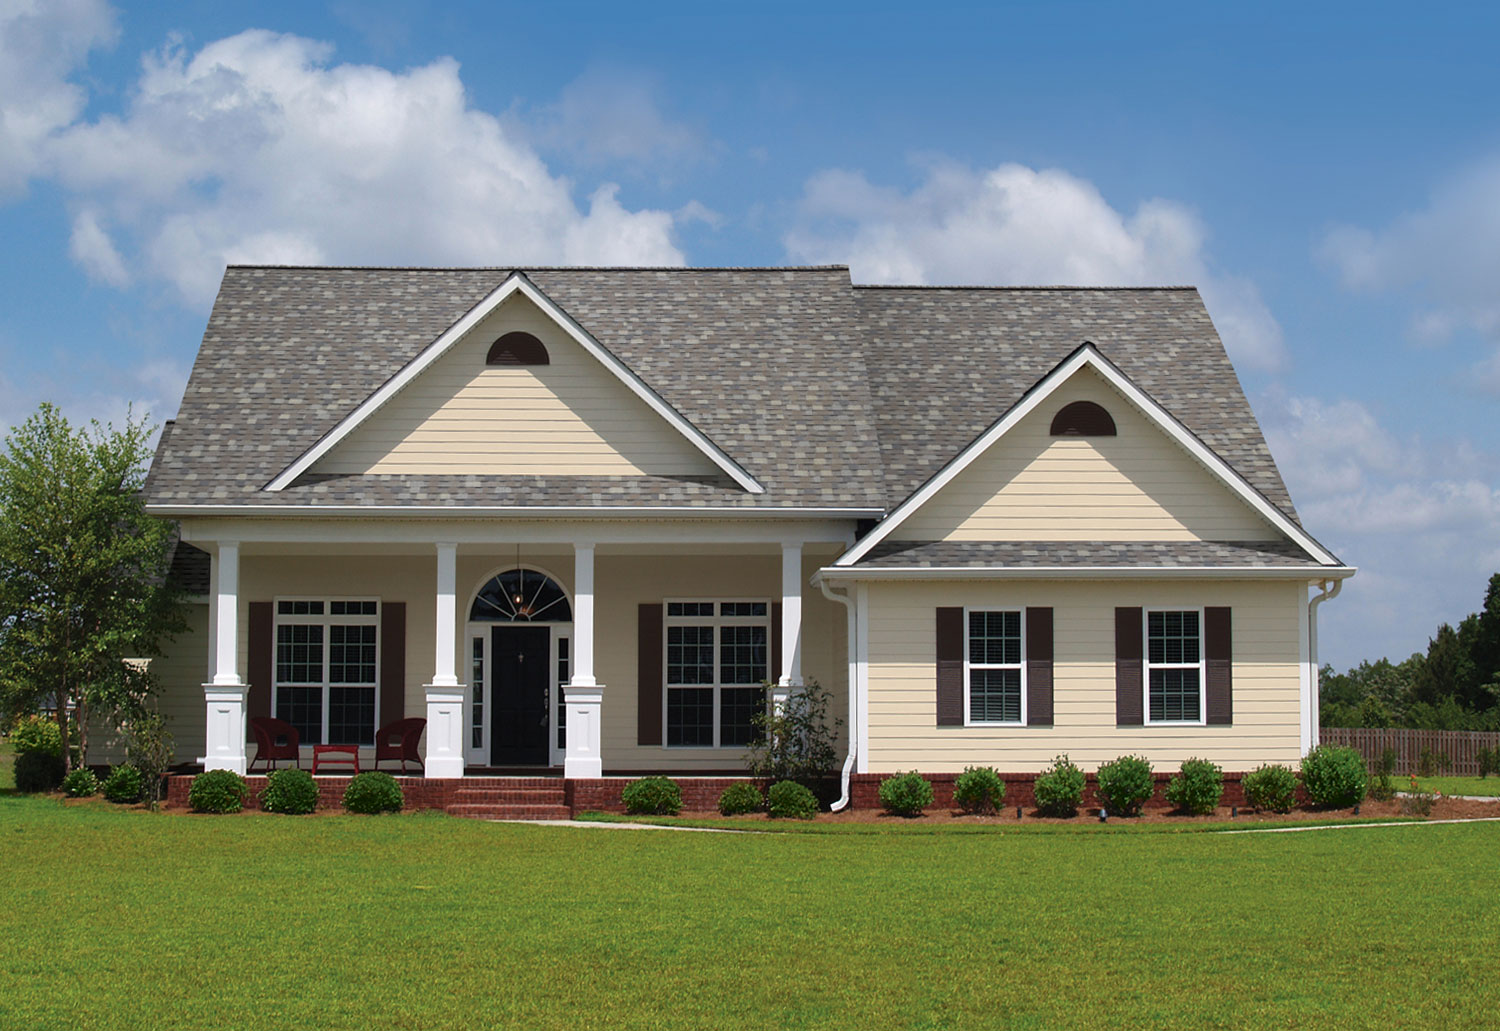 American Roofing Warner Robins | Roofing U0026 Construction